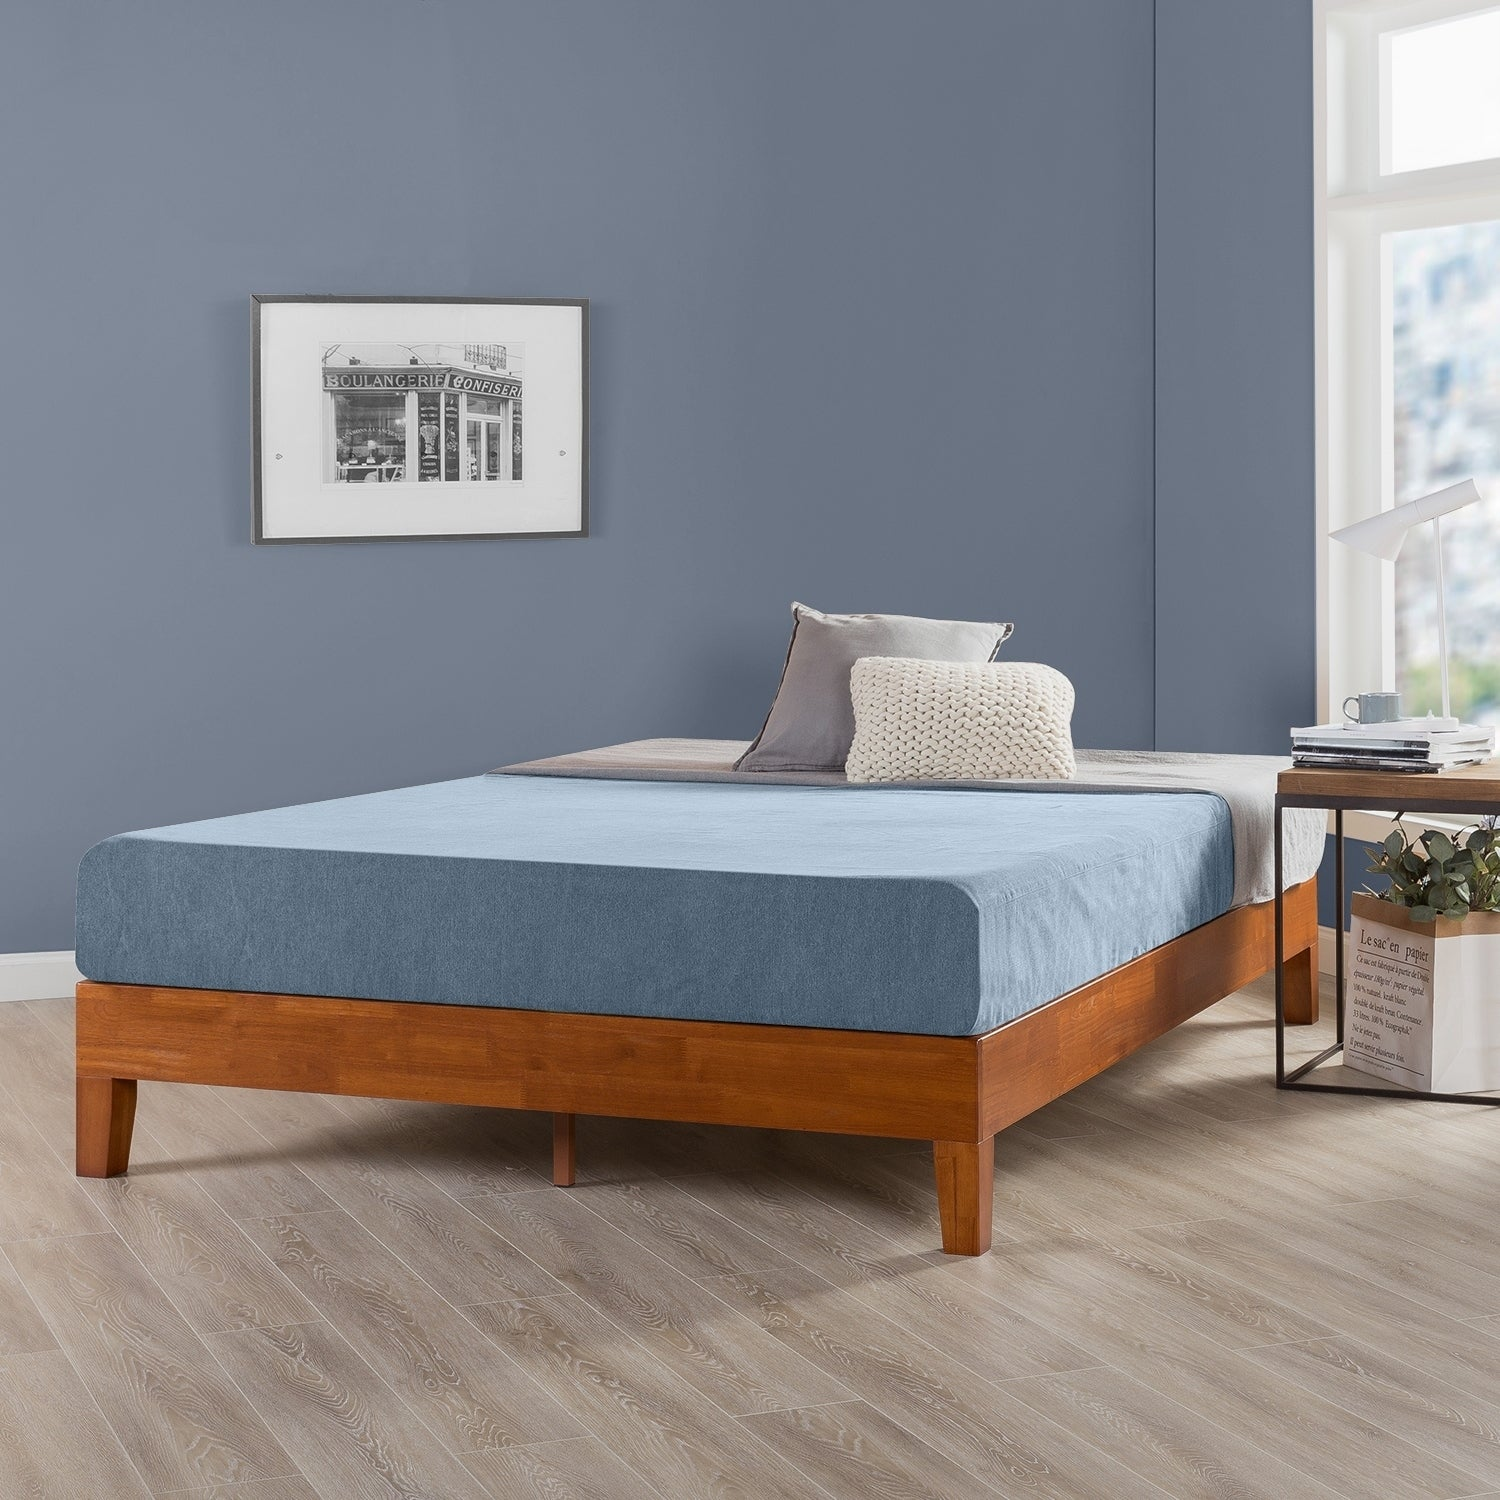 Twin Size 12 Inch Grand Solid Wood Platform Bed Frame, Cherry - Crown Comfort (Twin - Casual/Traditional/Modern & Contemporary - Wood)